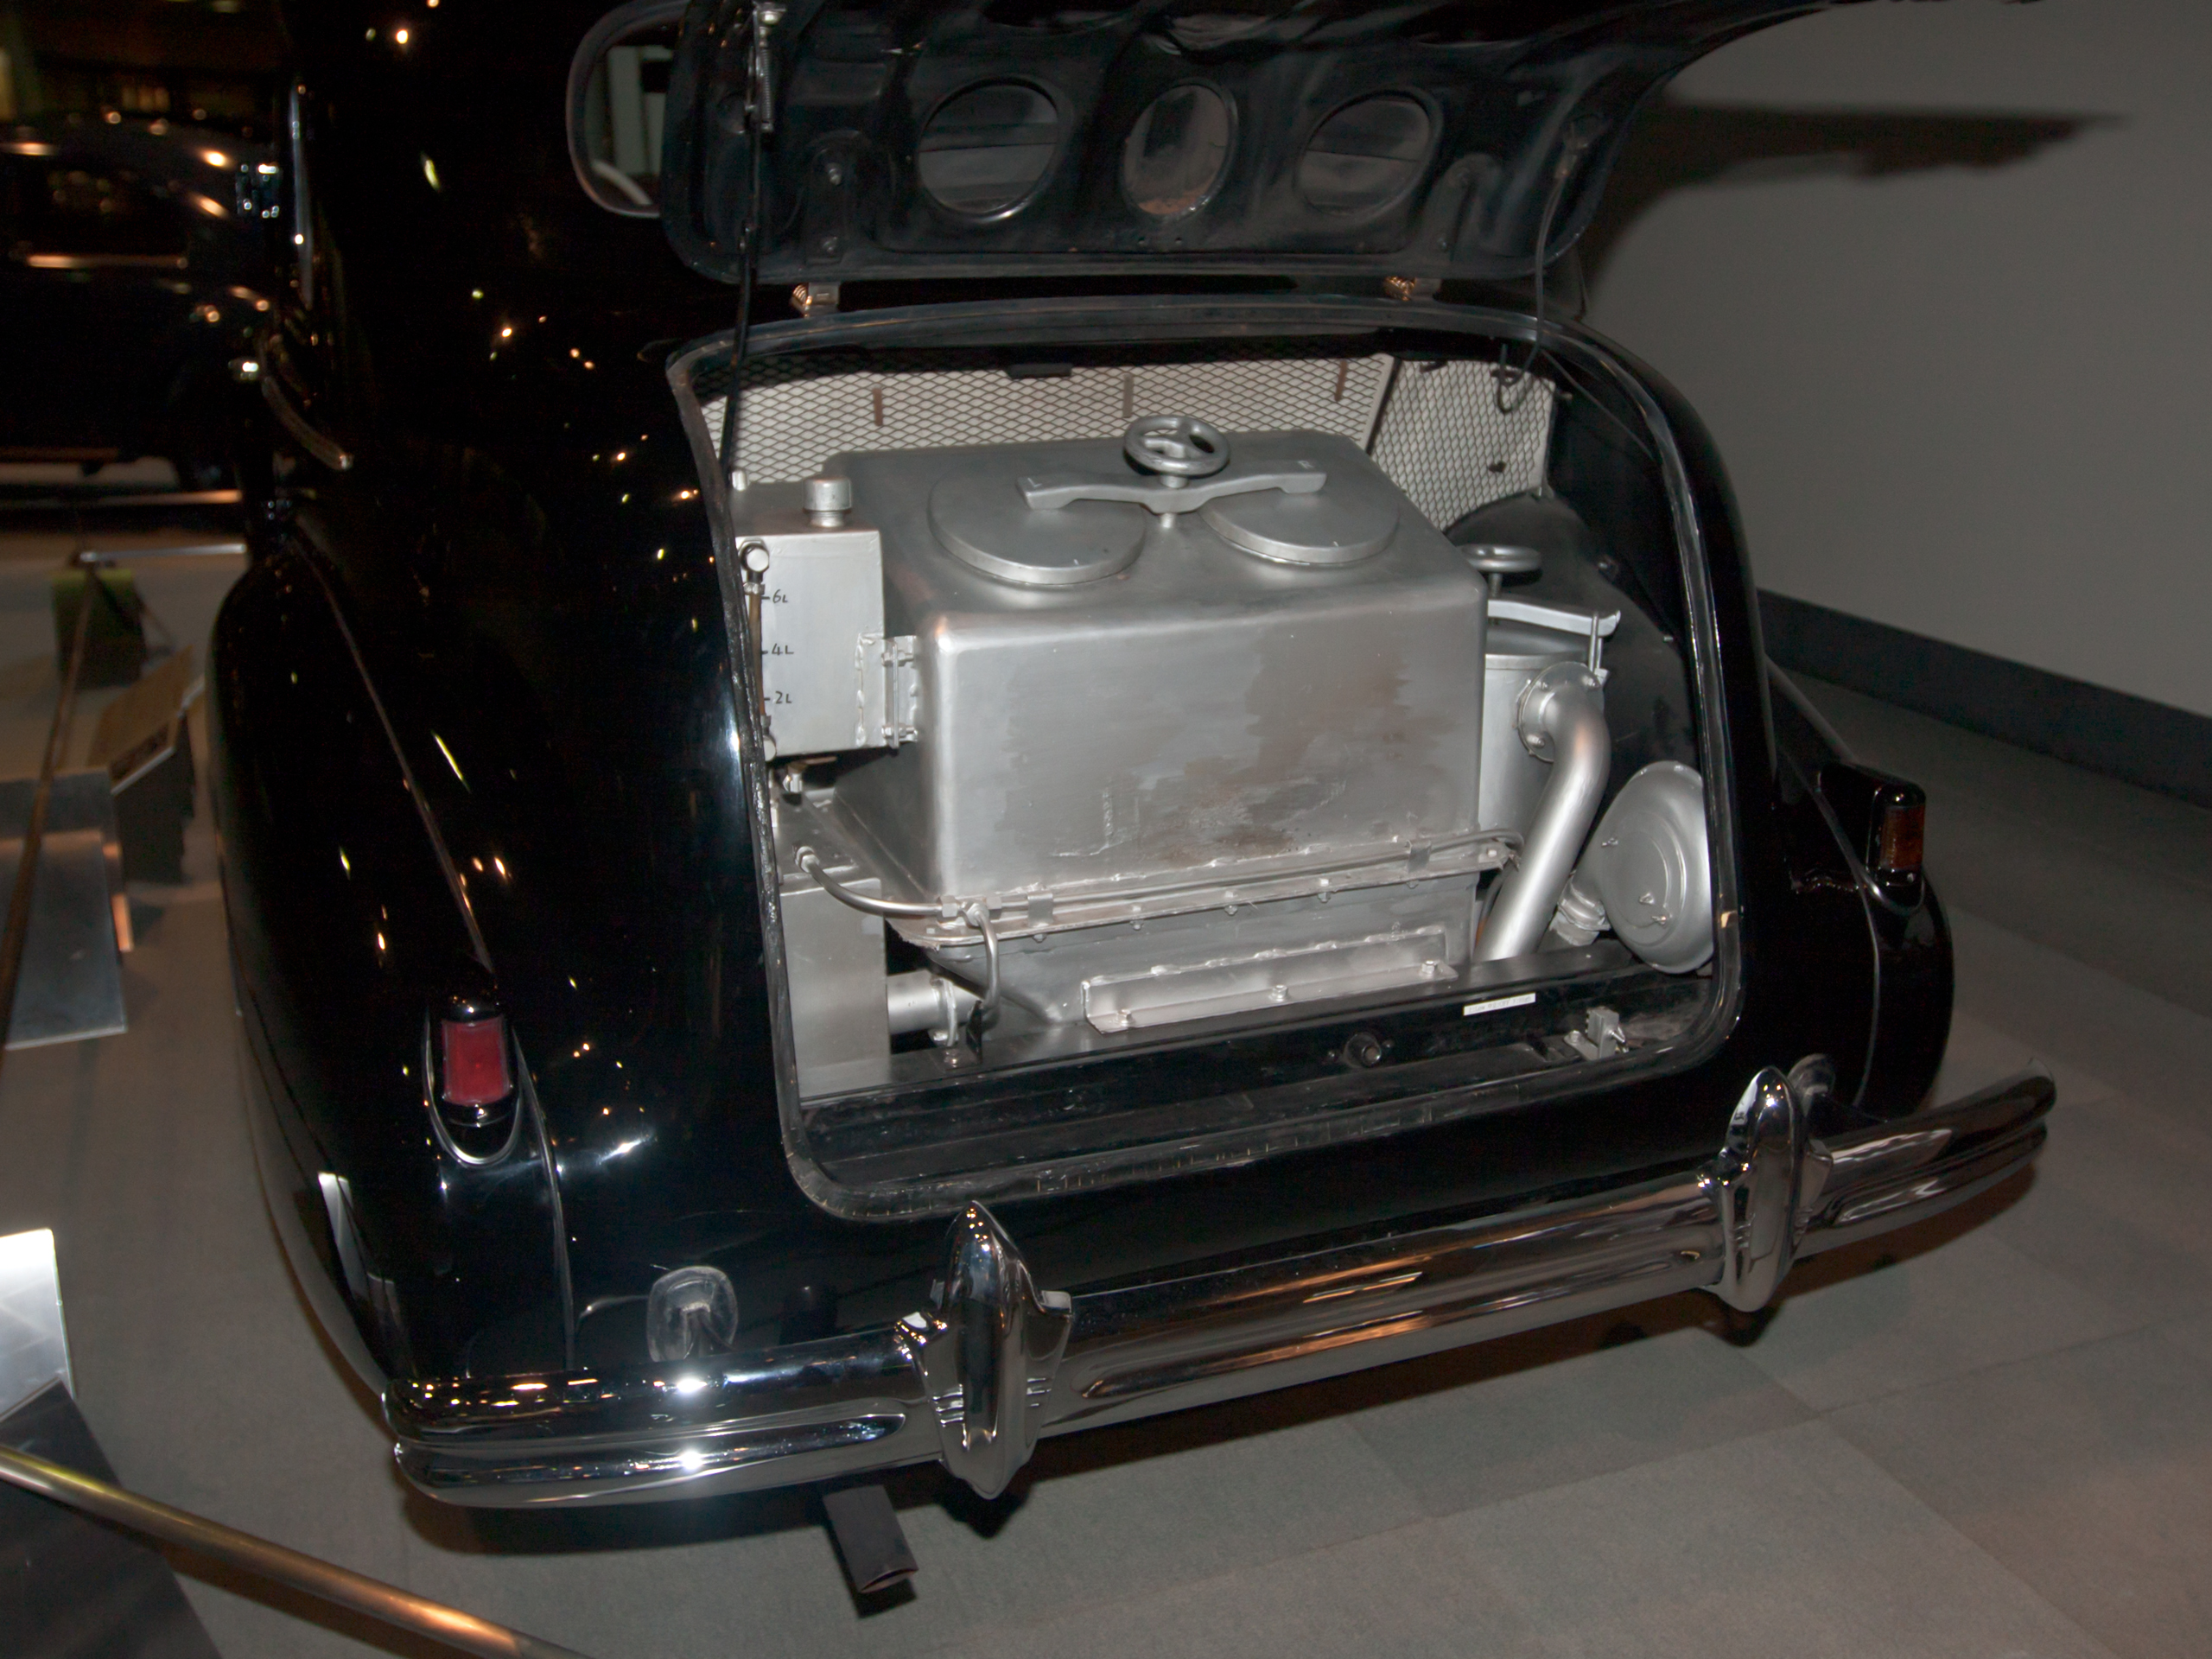 File Buick charcoal gas powered car 1937 gas generator Toyota